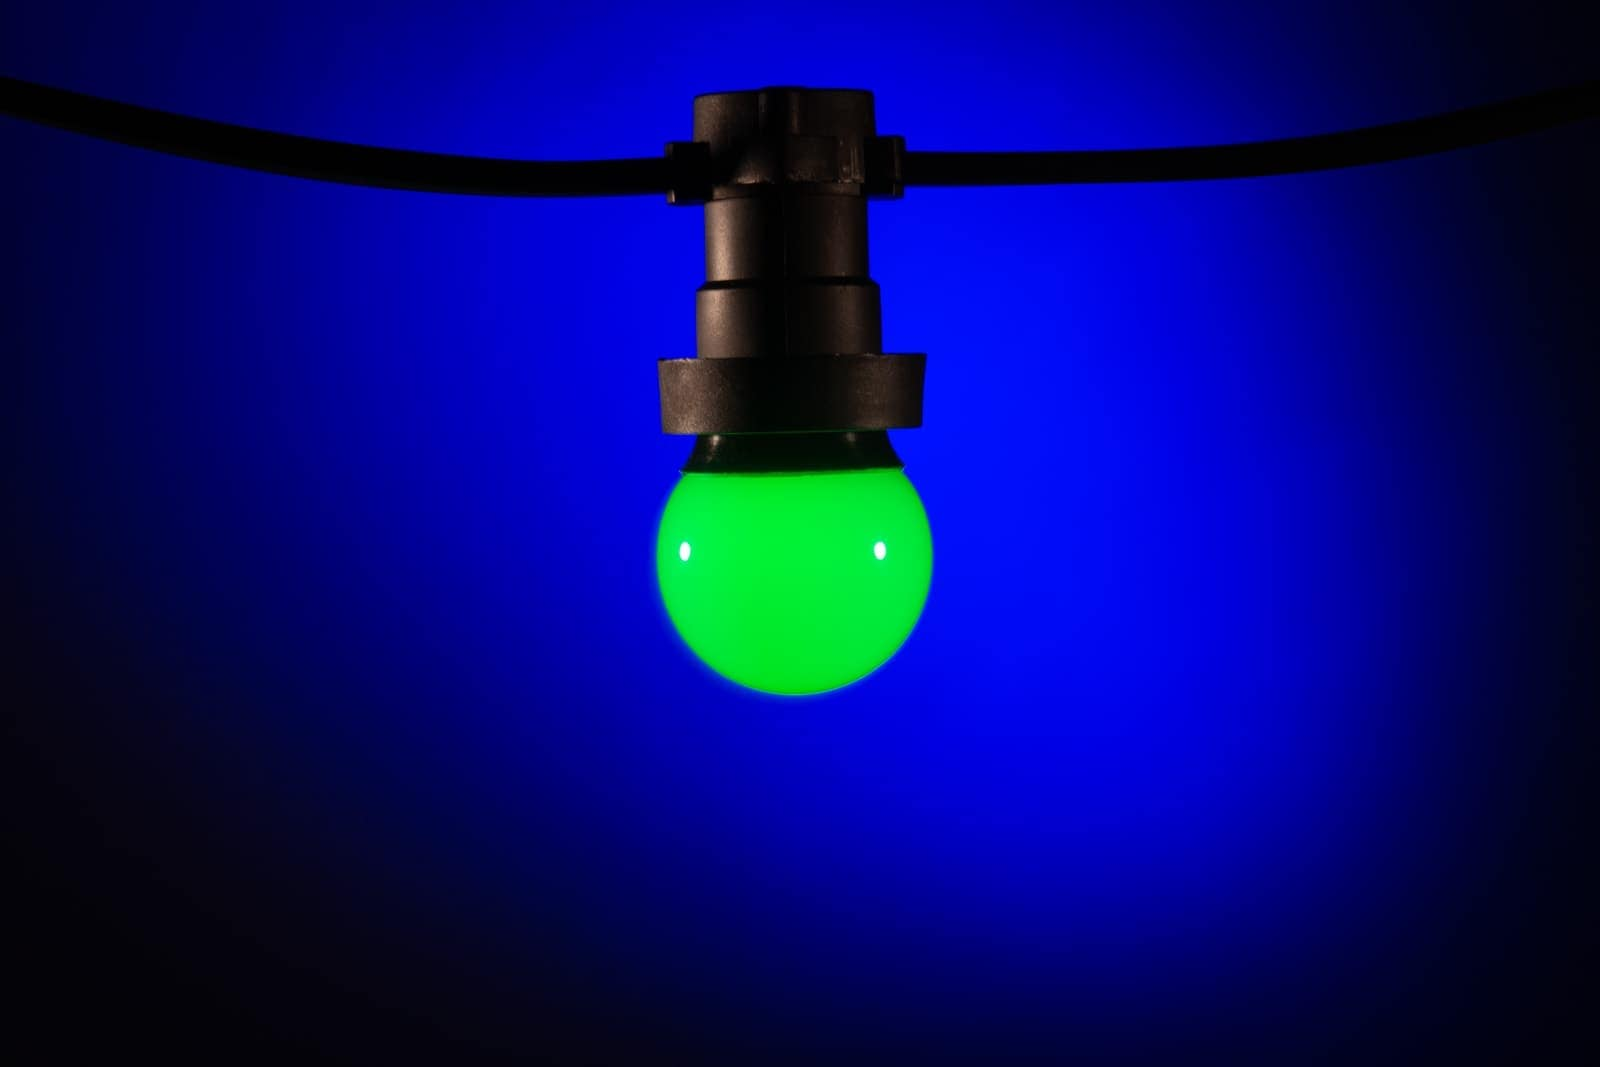 Prikkabel led lamp groen kerstverlichting buiten for Led lampen shop